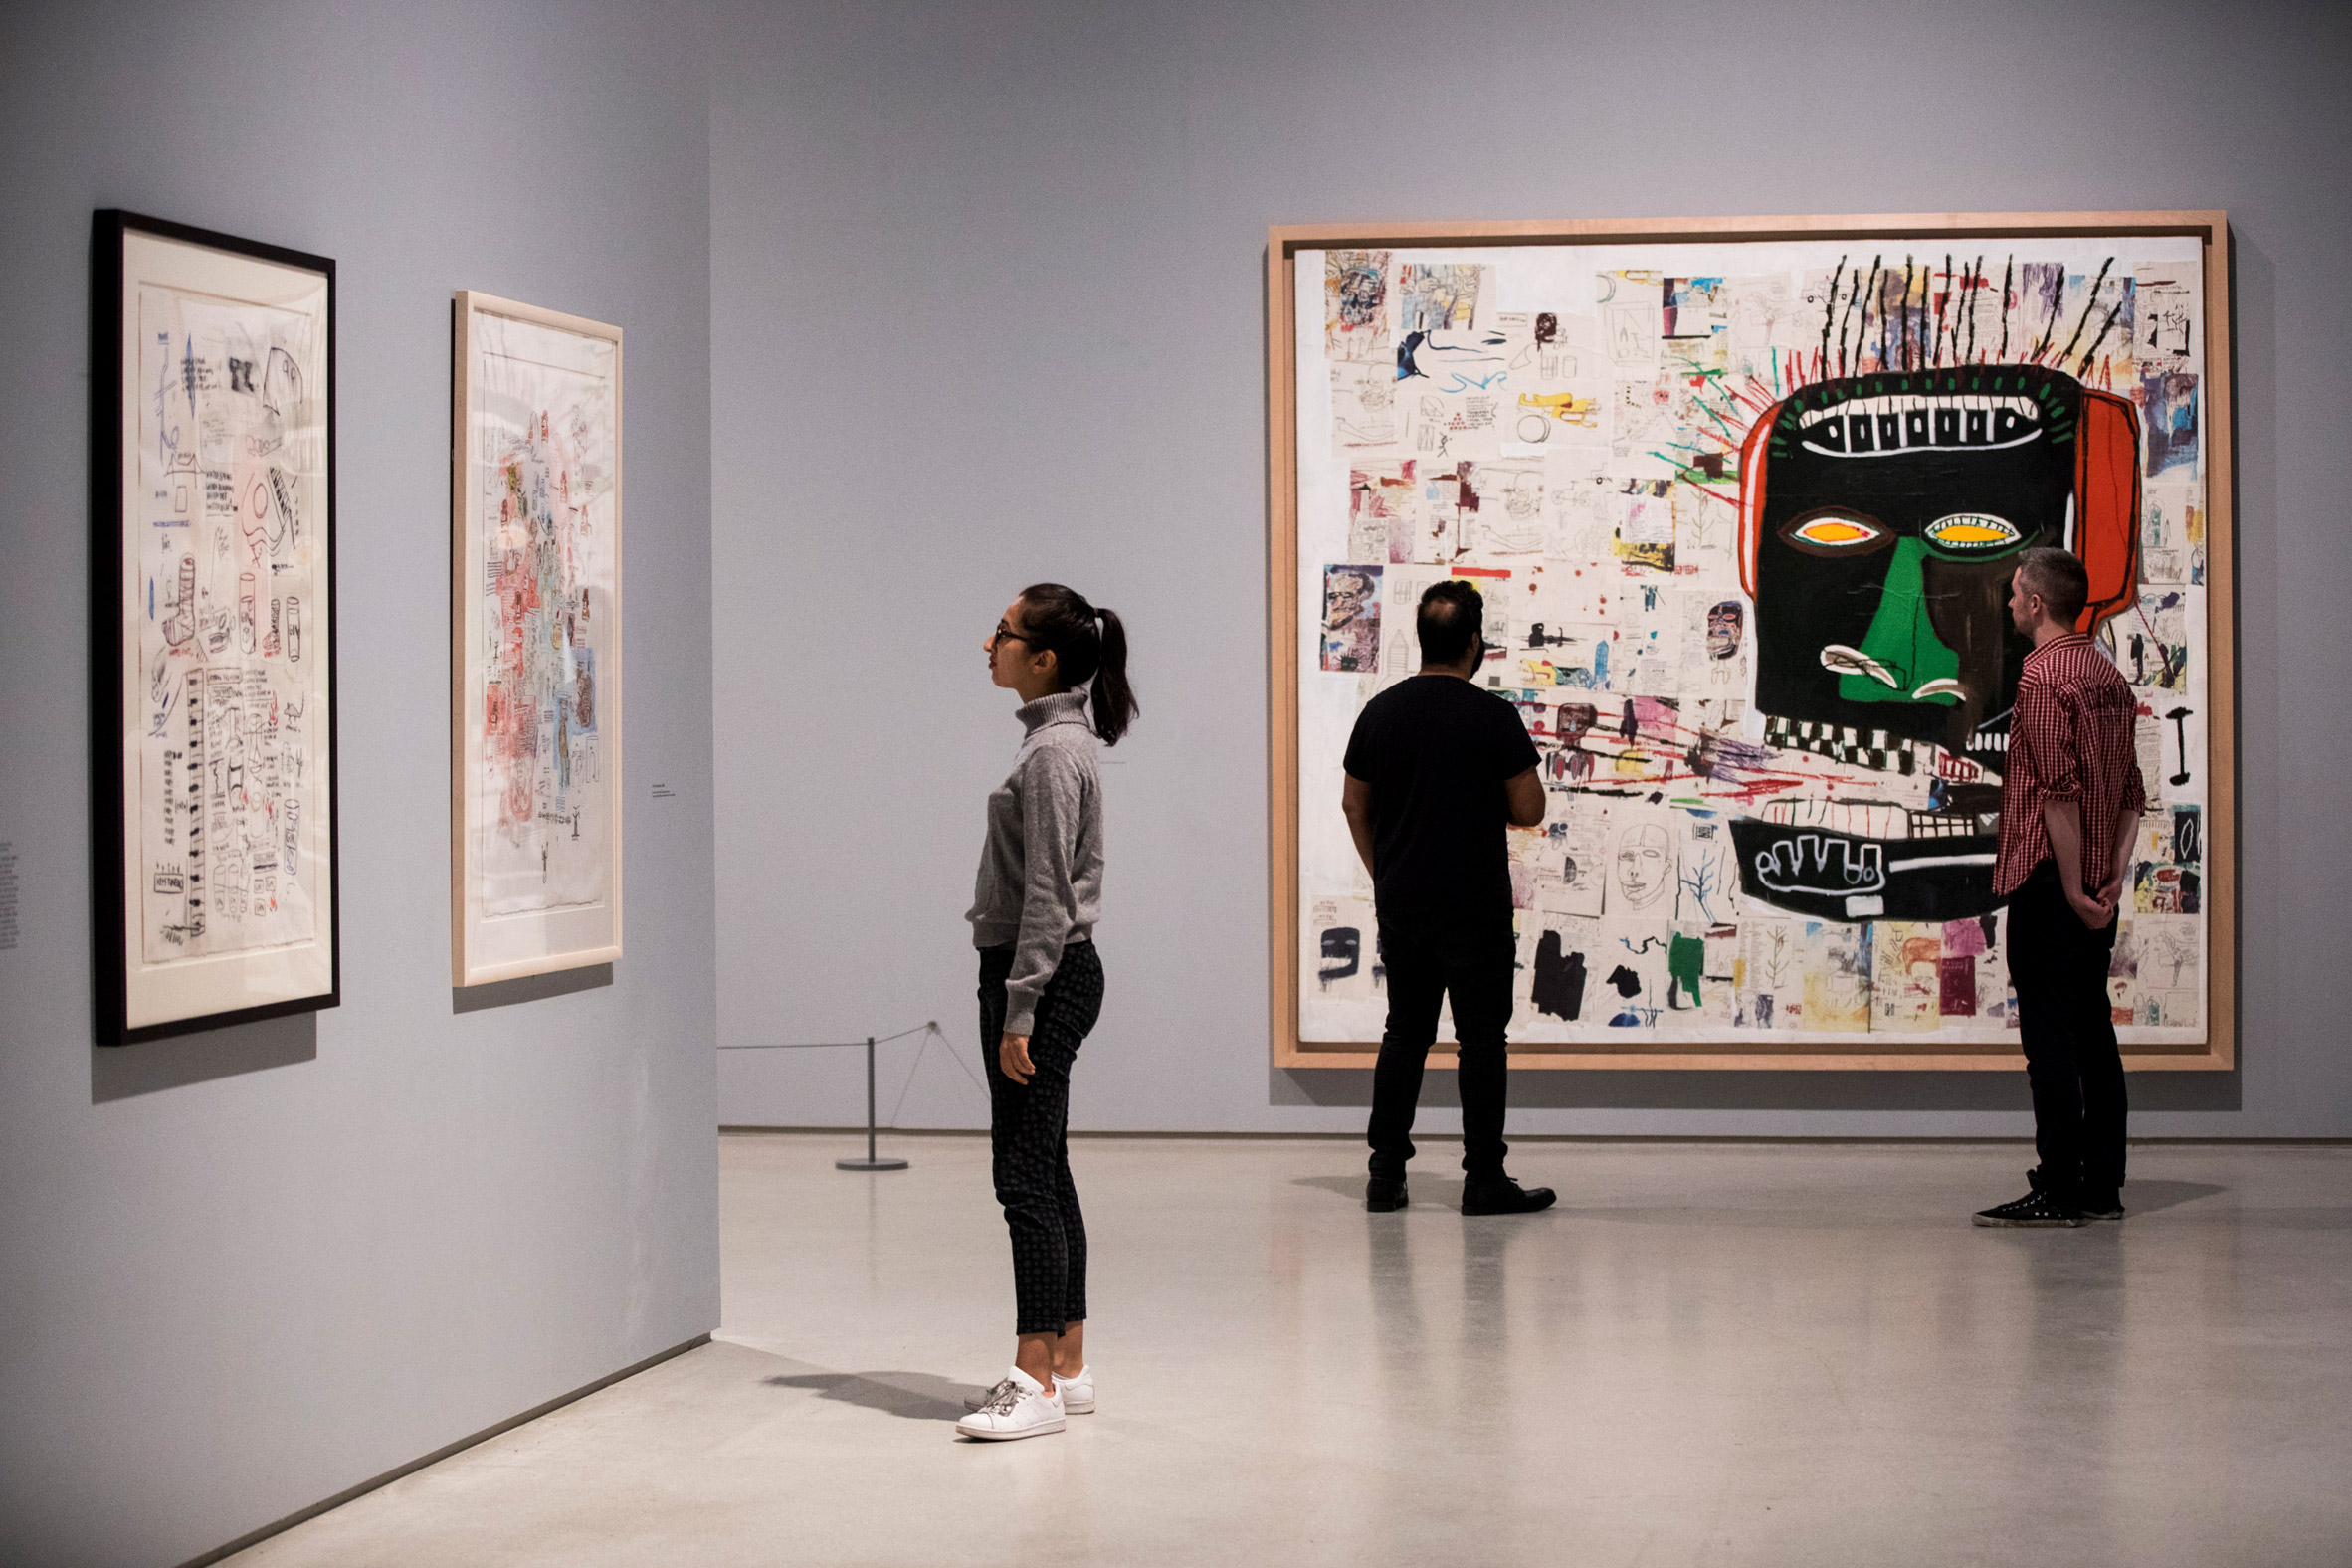 Jean-Michel Basquiat's art reconstituted the world around him, says Boom for Real curator